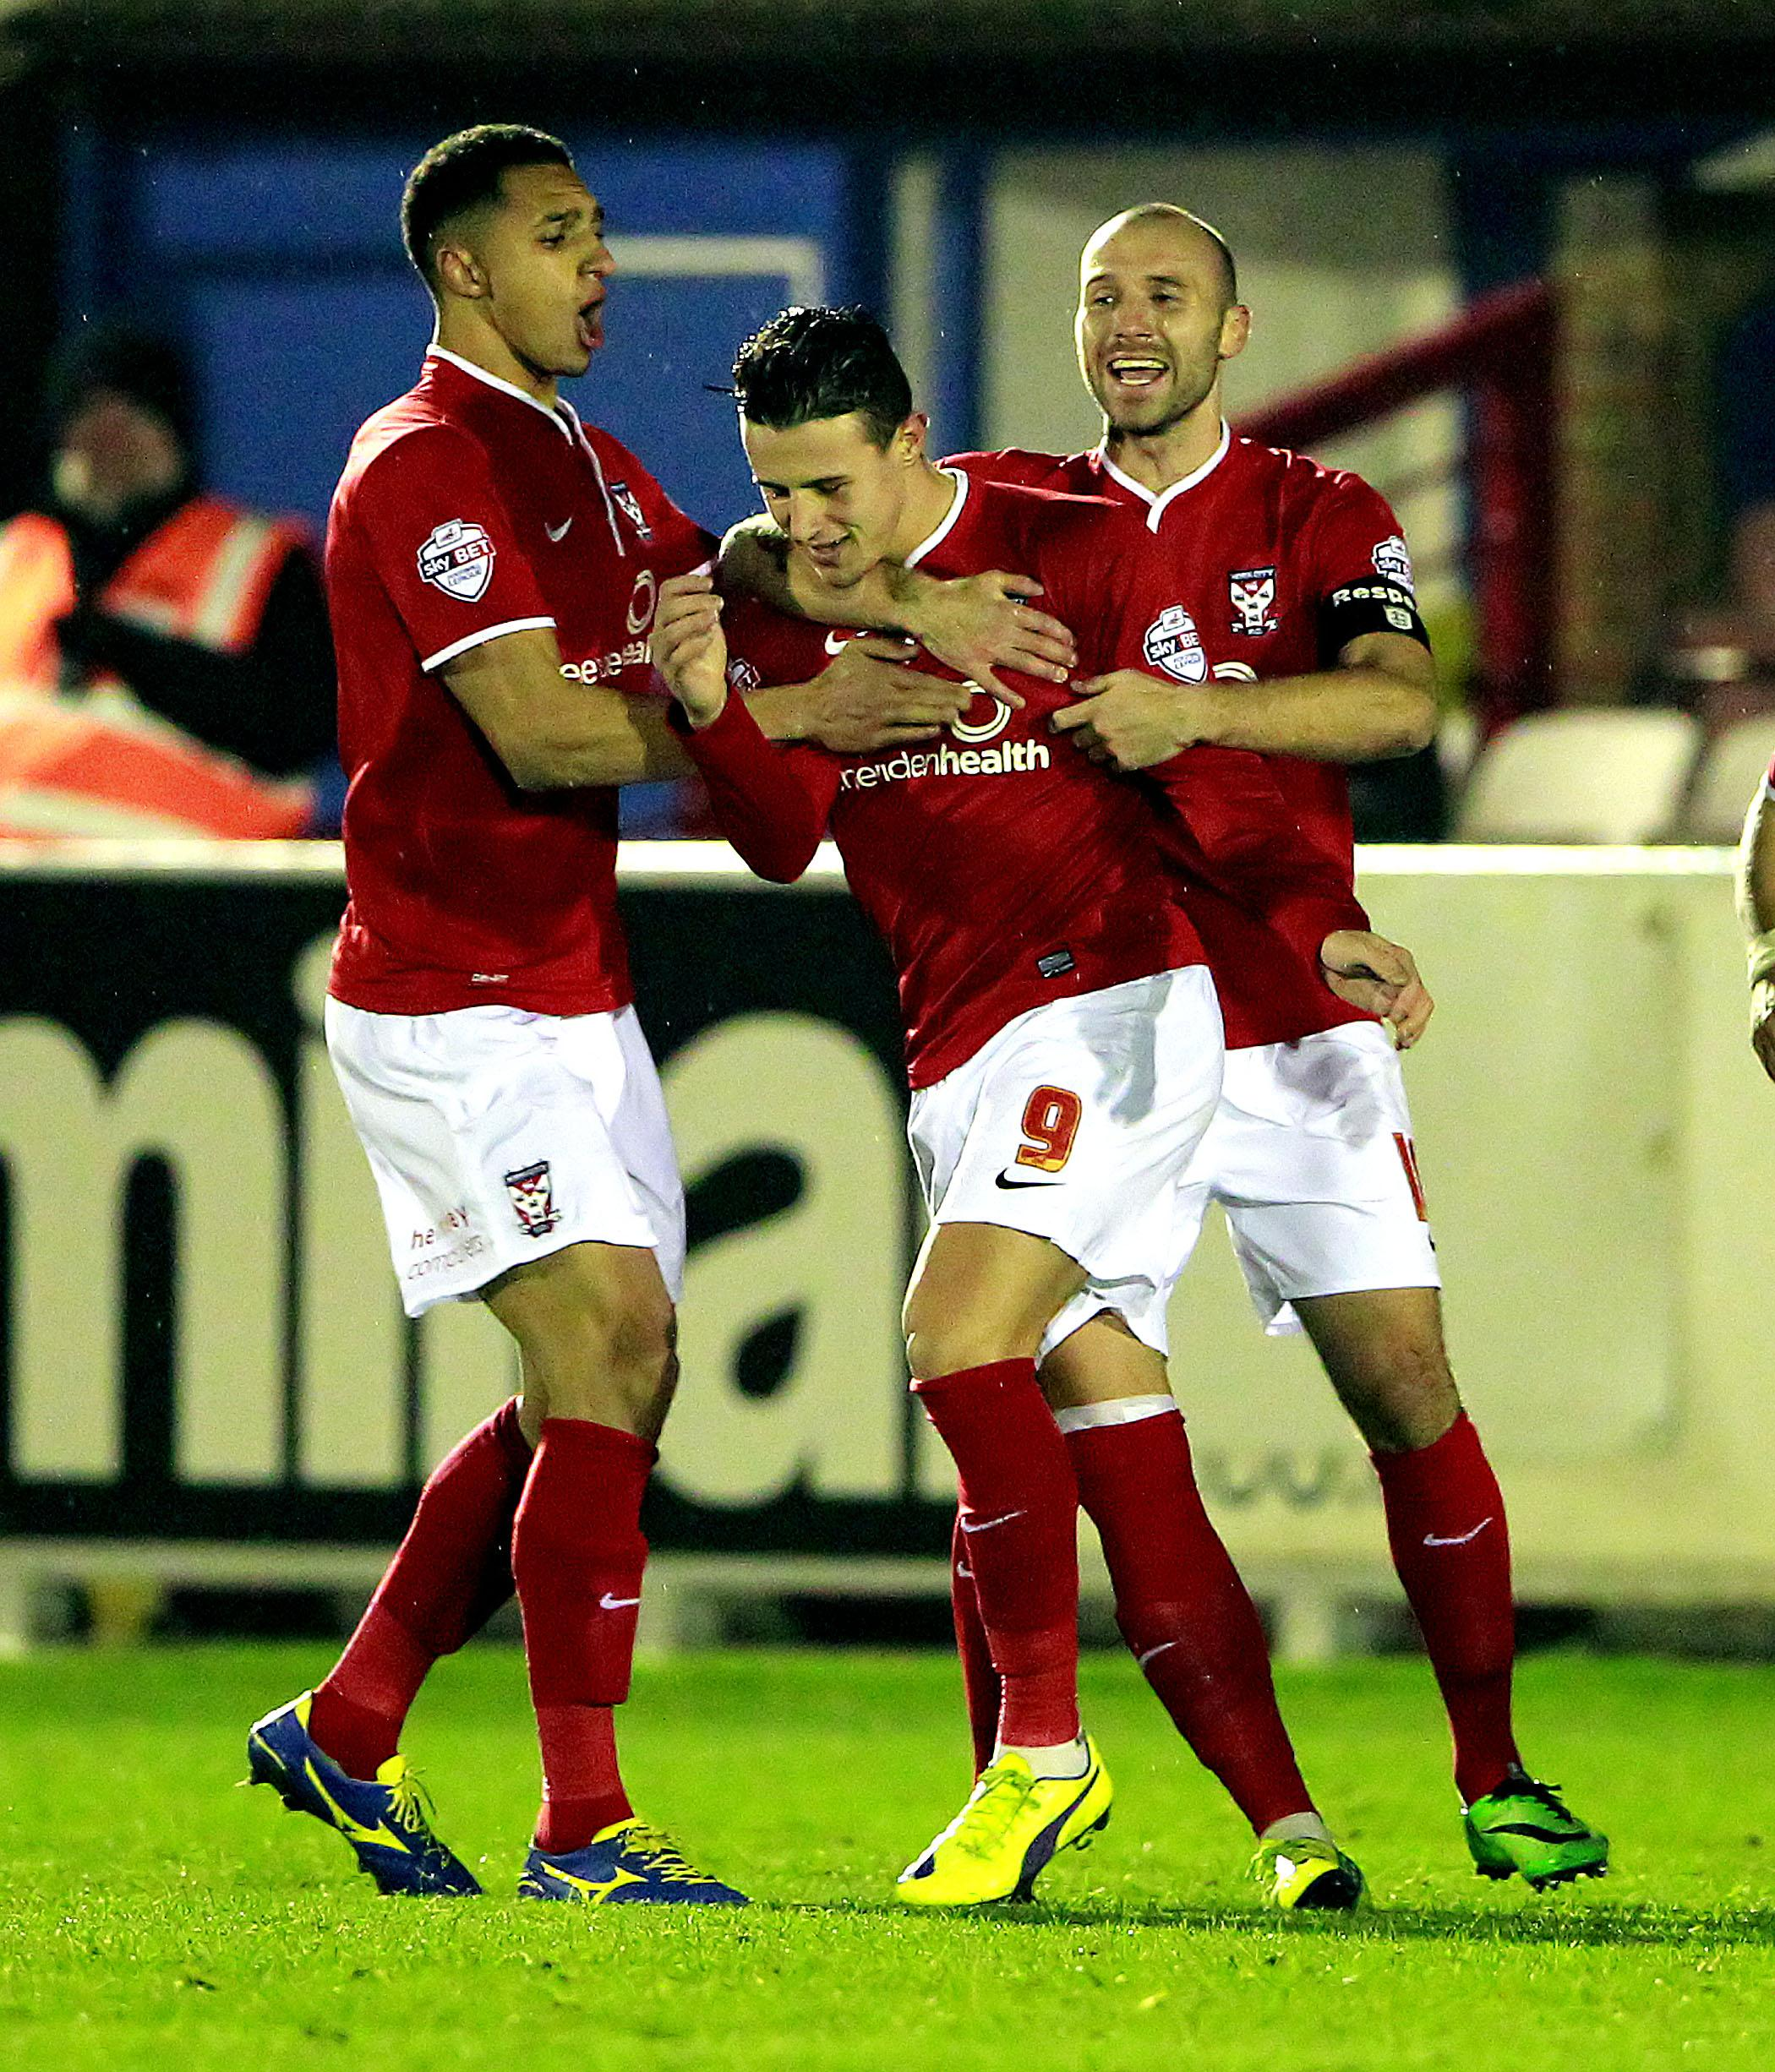 Wes Fletcher celebrates opening the scoring against AFC Wimbledon, but it went downhill after that as York City exited the FA Cup